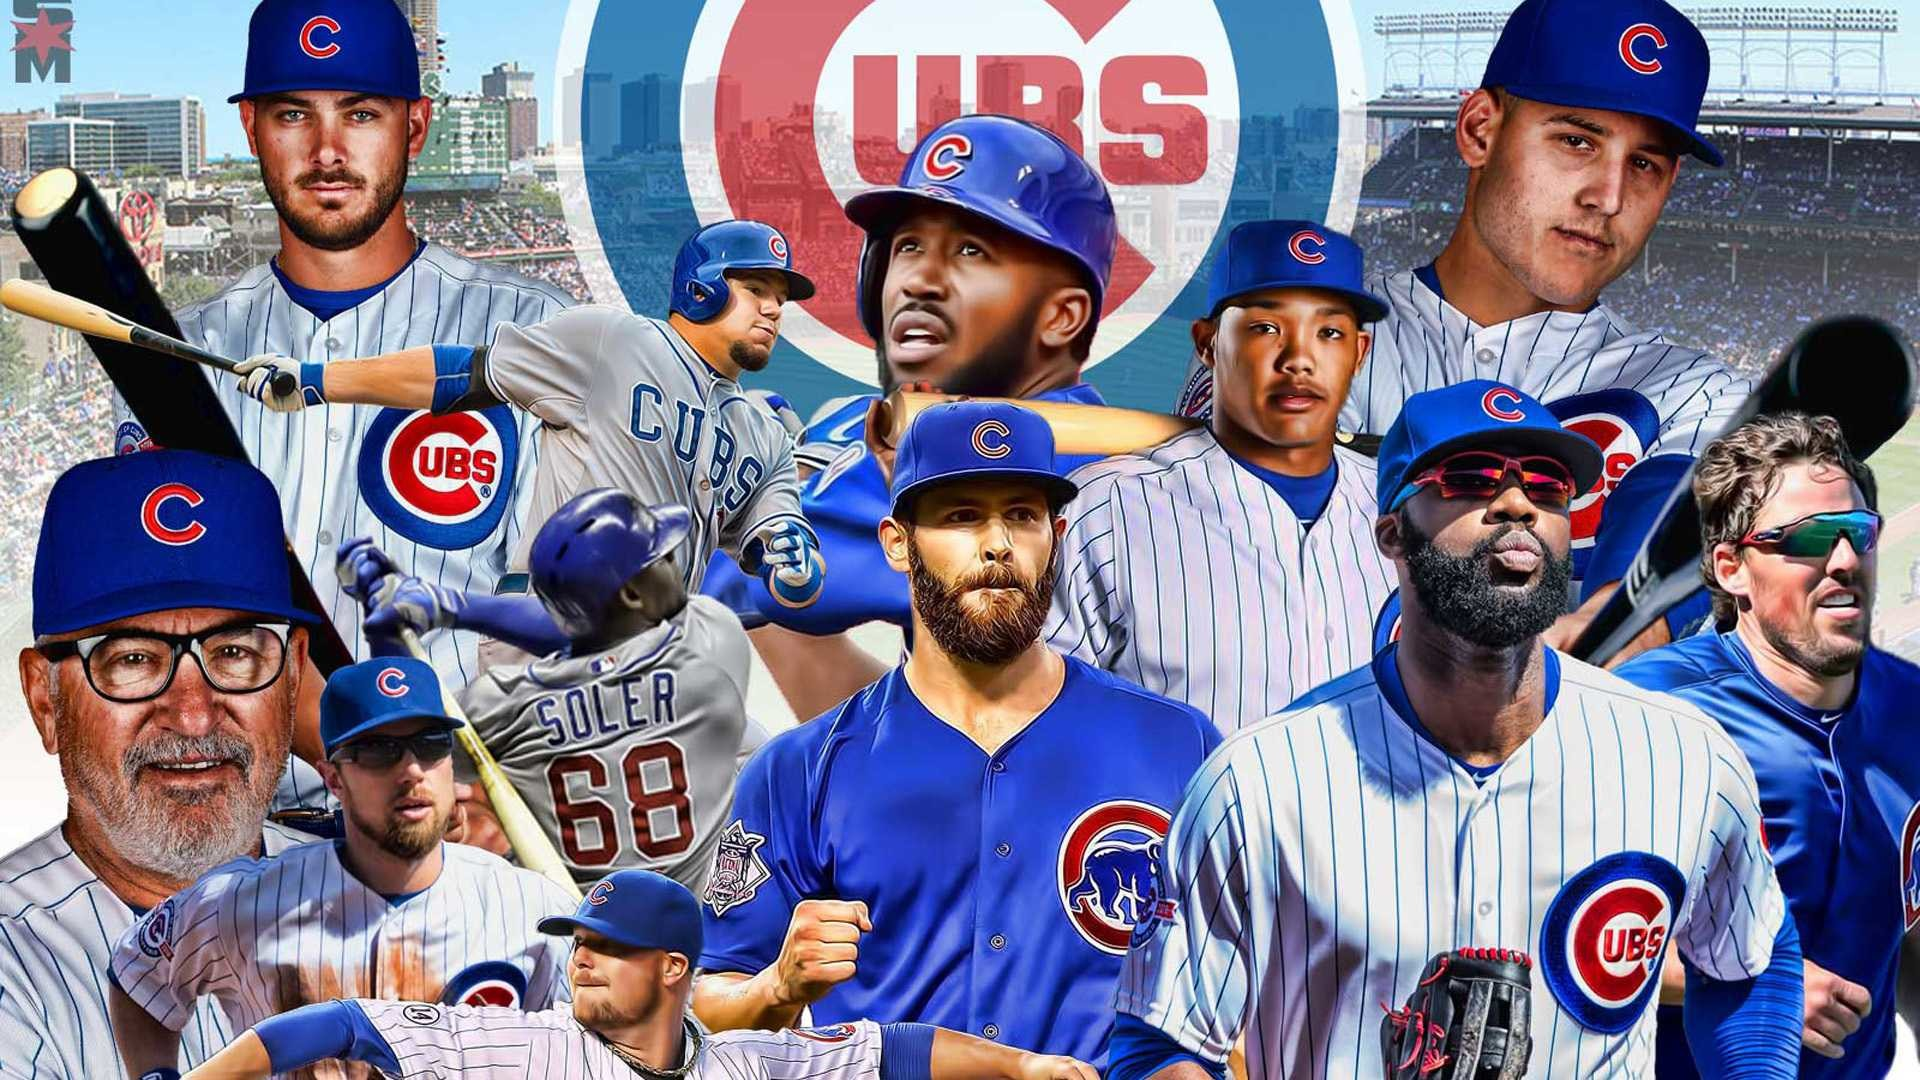 Cubs to try the repeat. Photo by https://wallsdesk.com